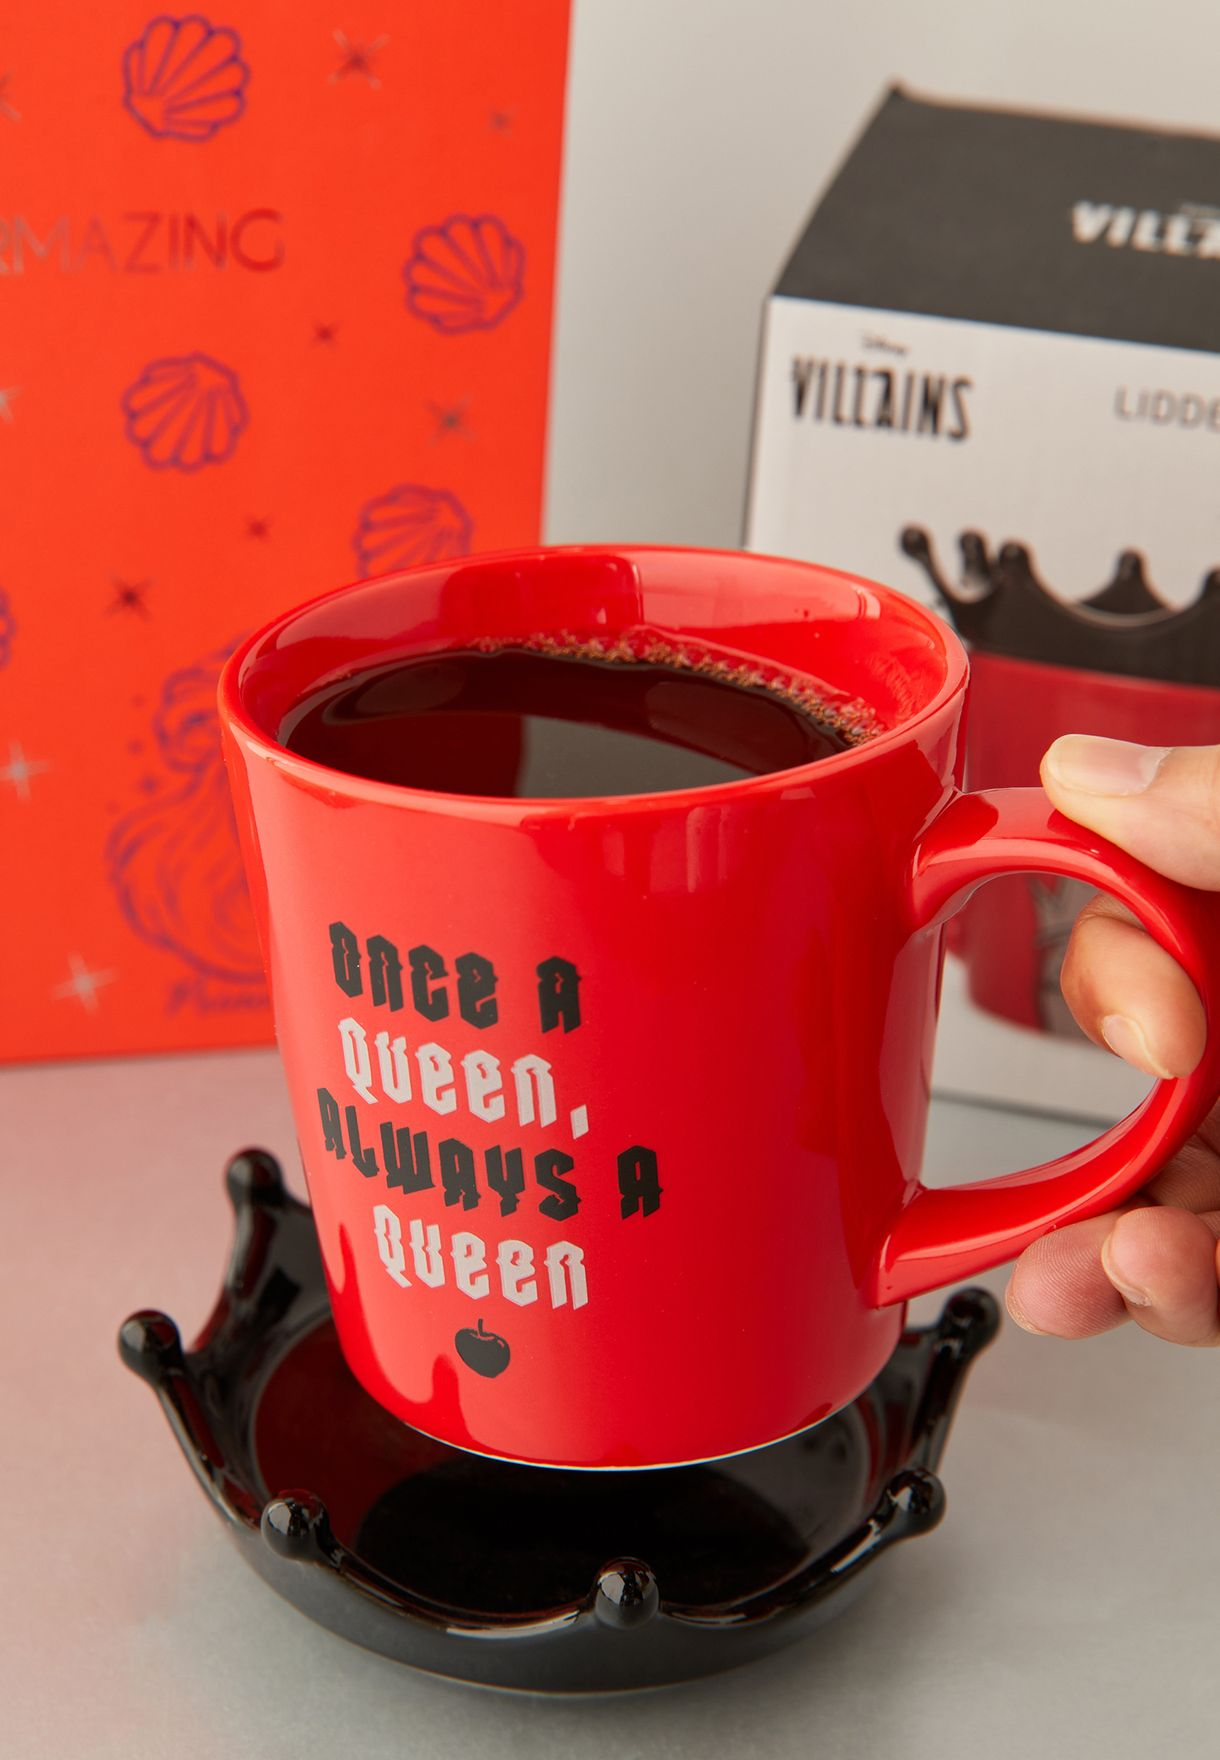 Disney Villains Evil Queen Mug